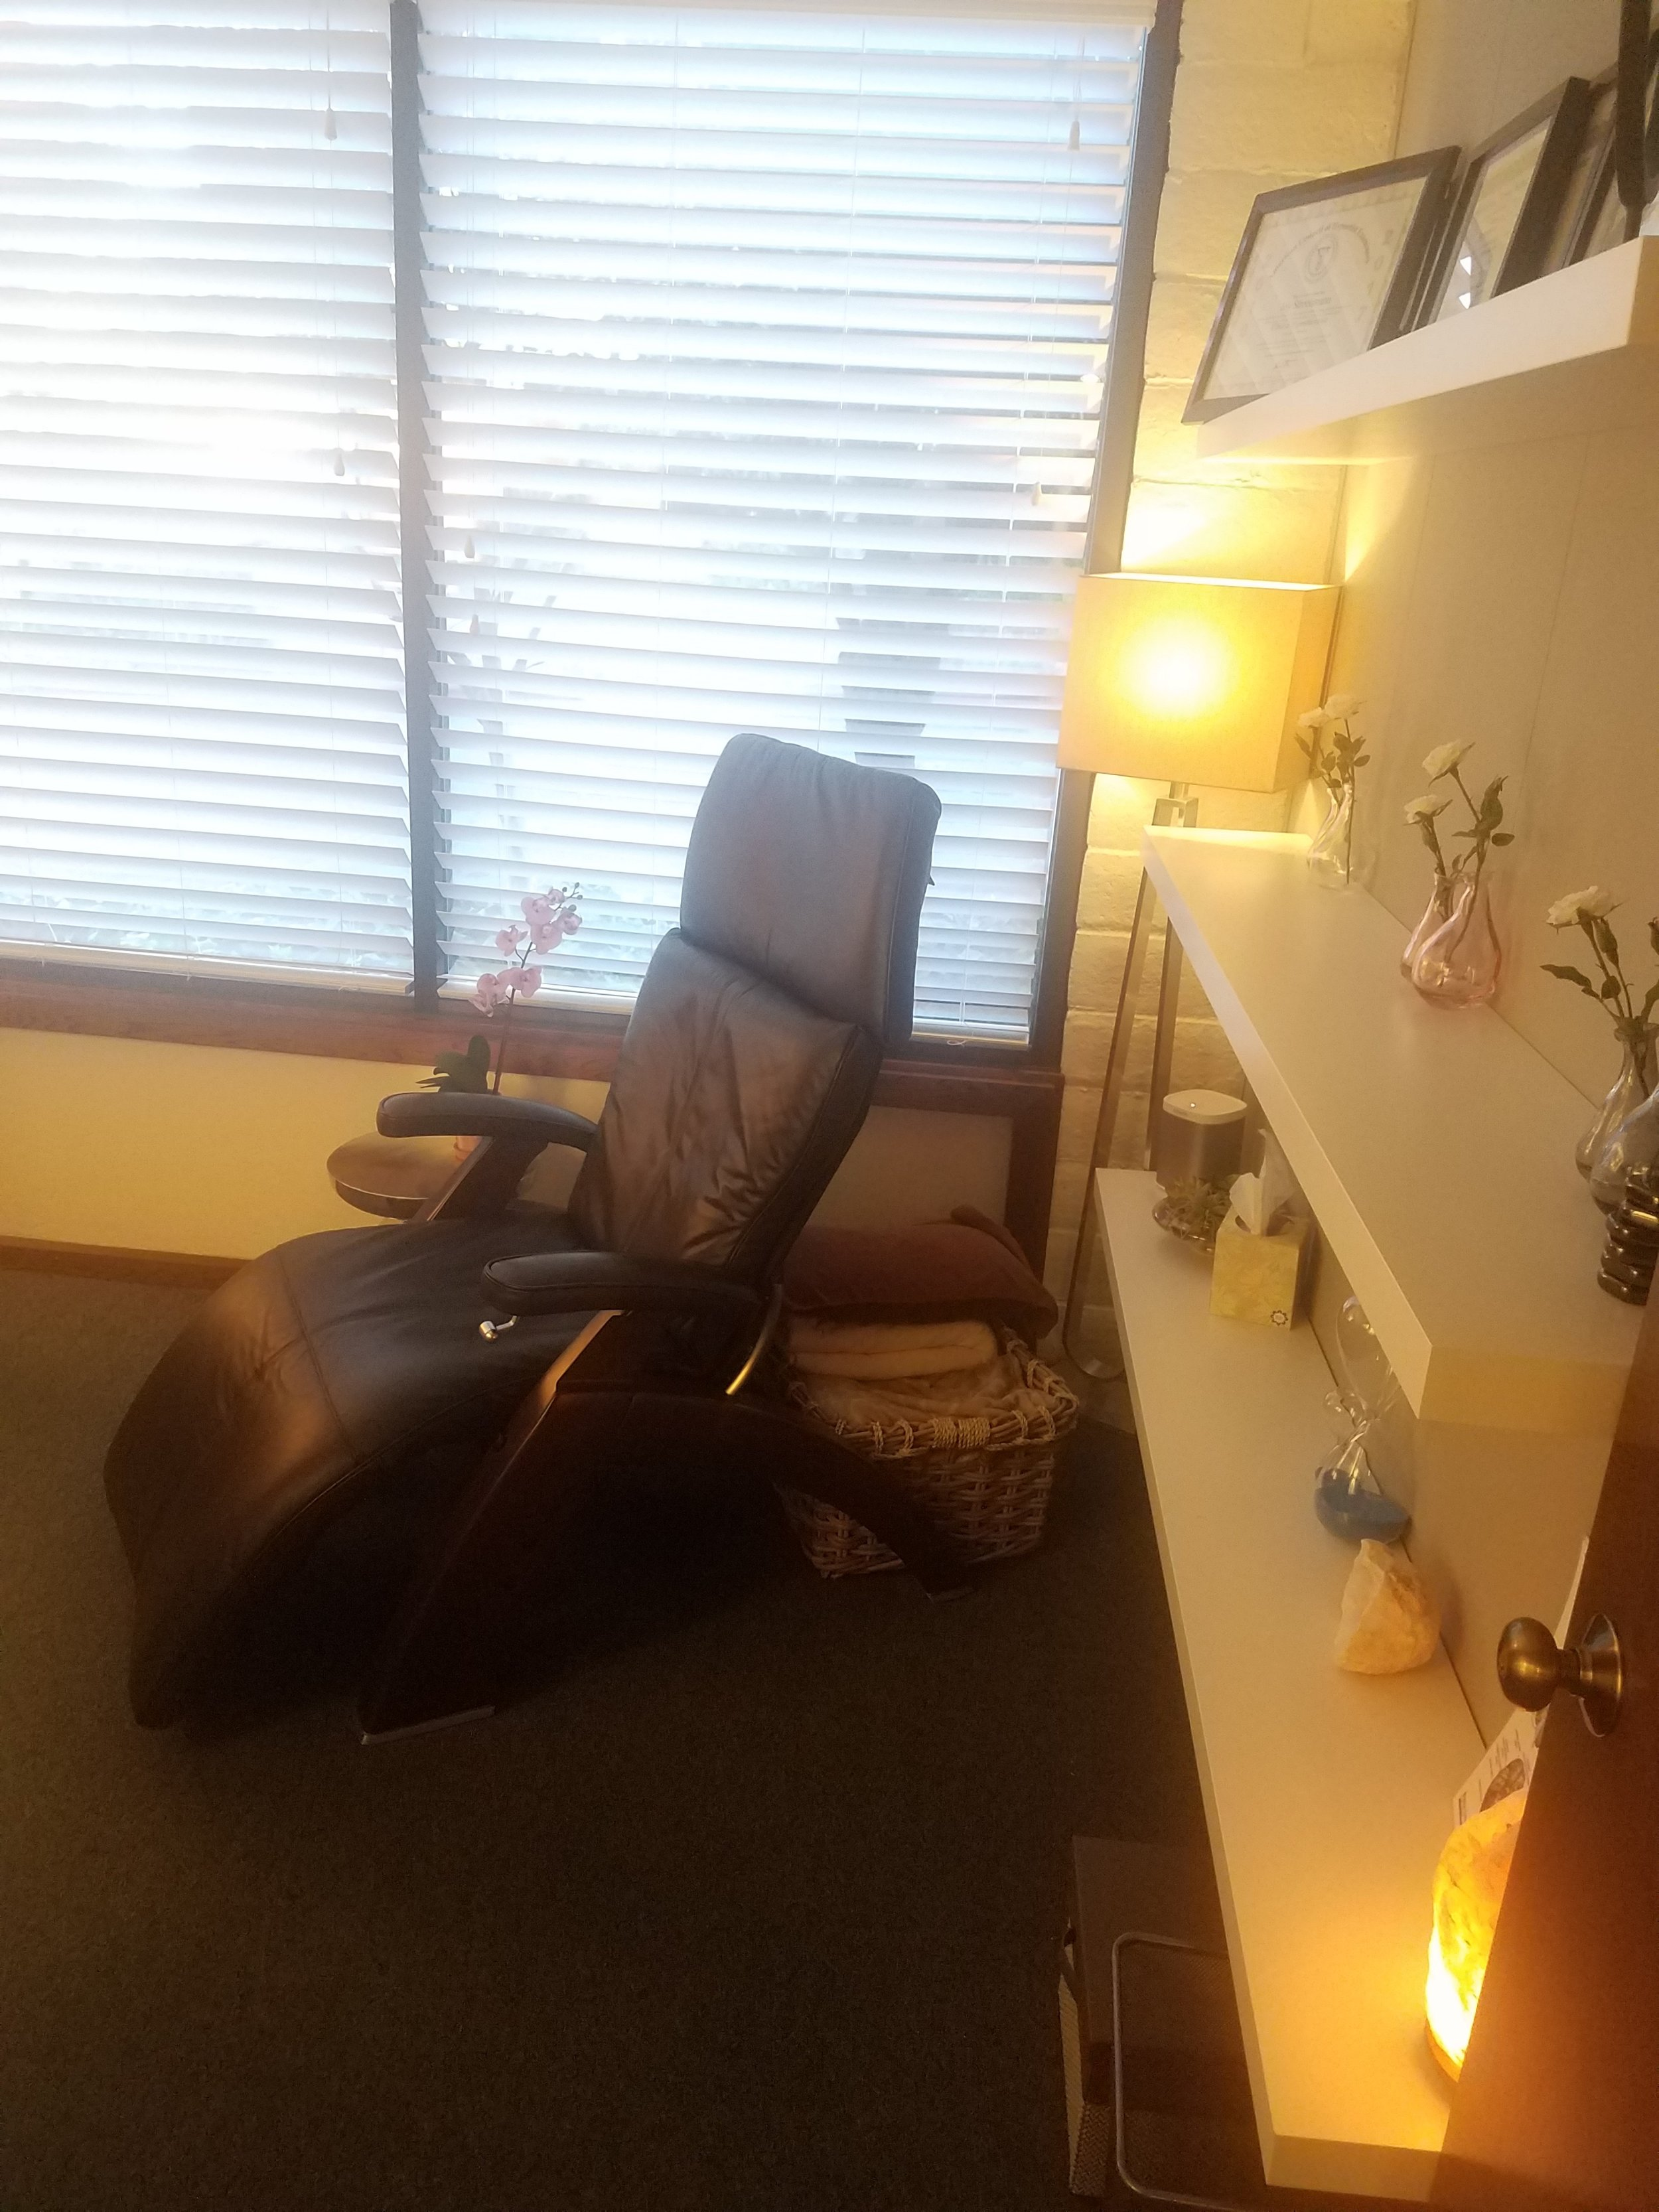 Hallway view of hypno-chair.jpg